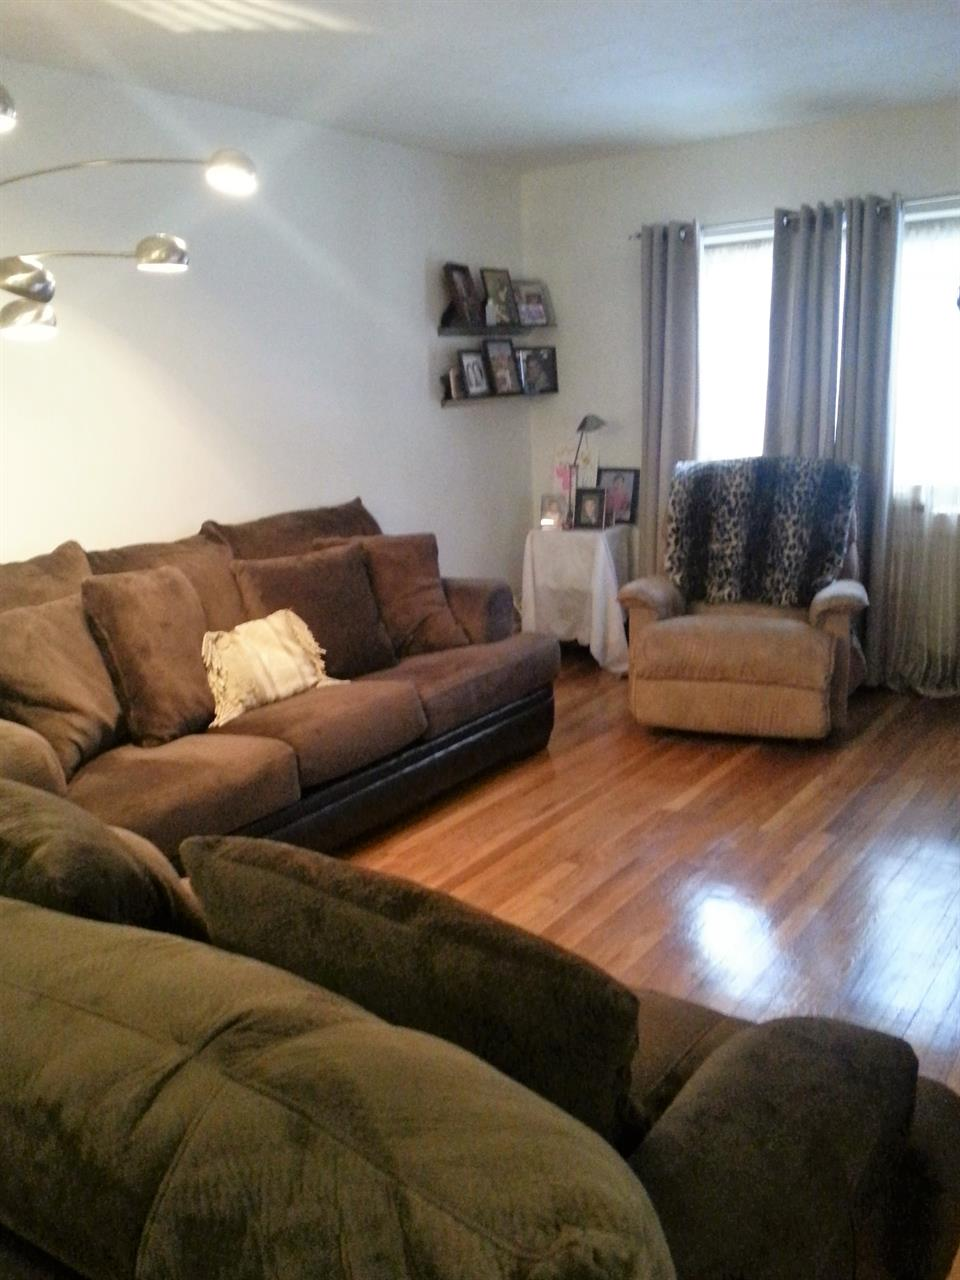 Co-op / Condo for Rent at 268 Bay17th Street Apt A1 268 Bay 17th Street Apt A1 Brooklyn, 11214 United States